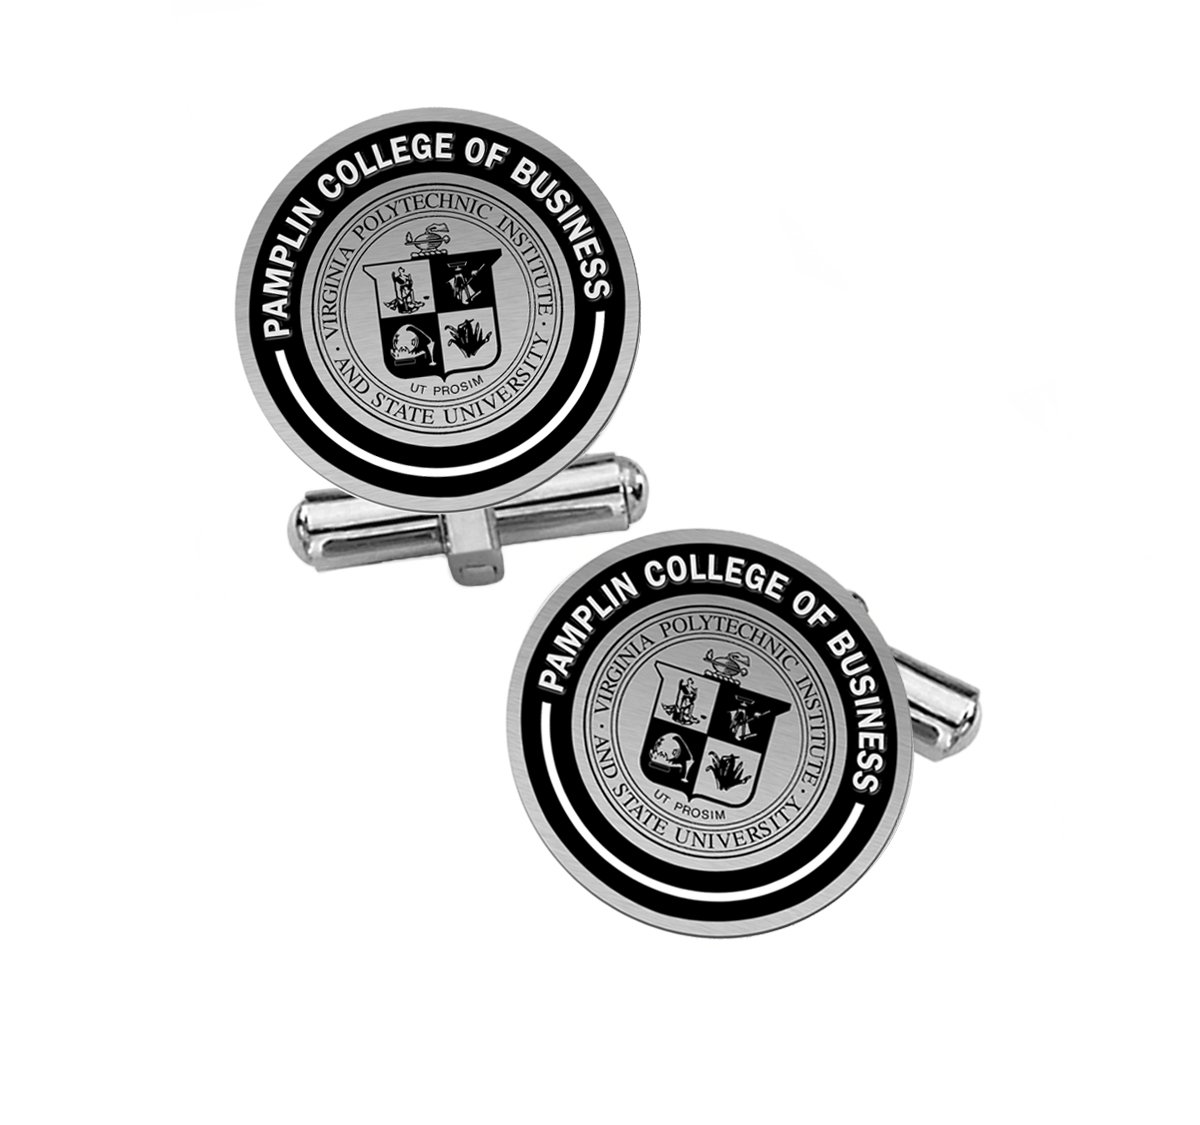 Pamplin College of Business Cufflinks | Virginia Tech by College Jewelry